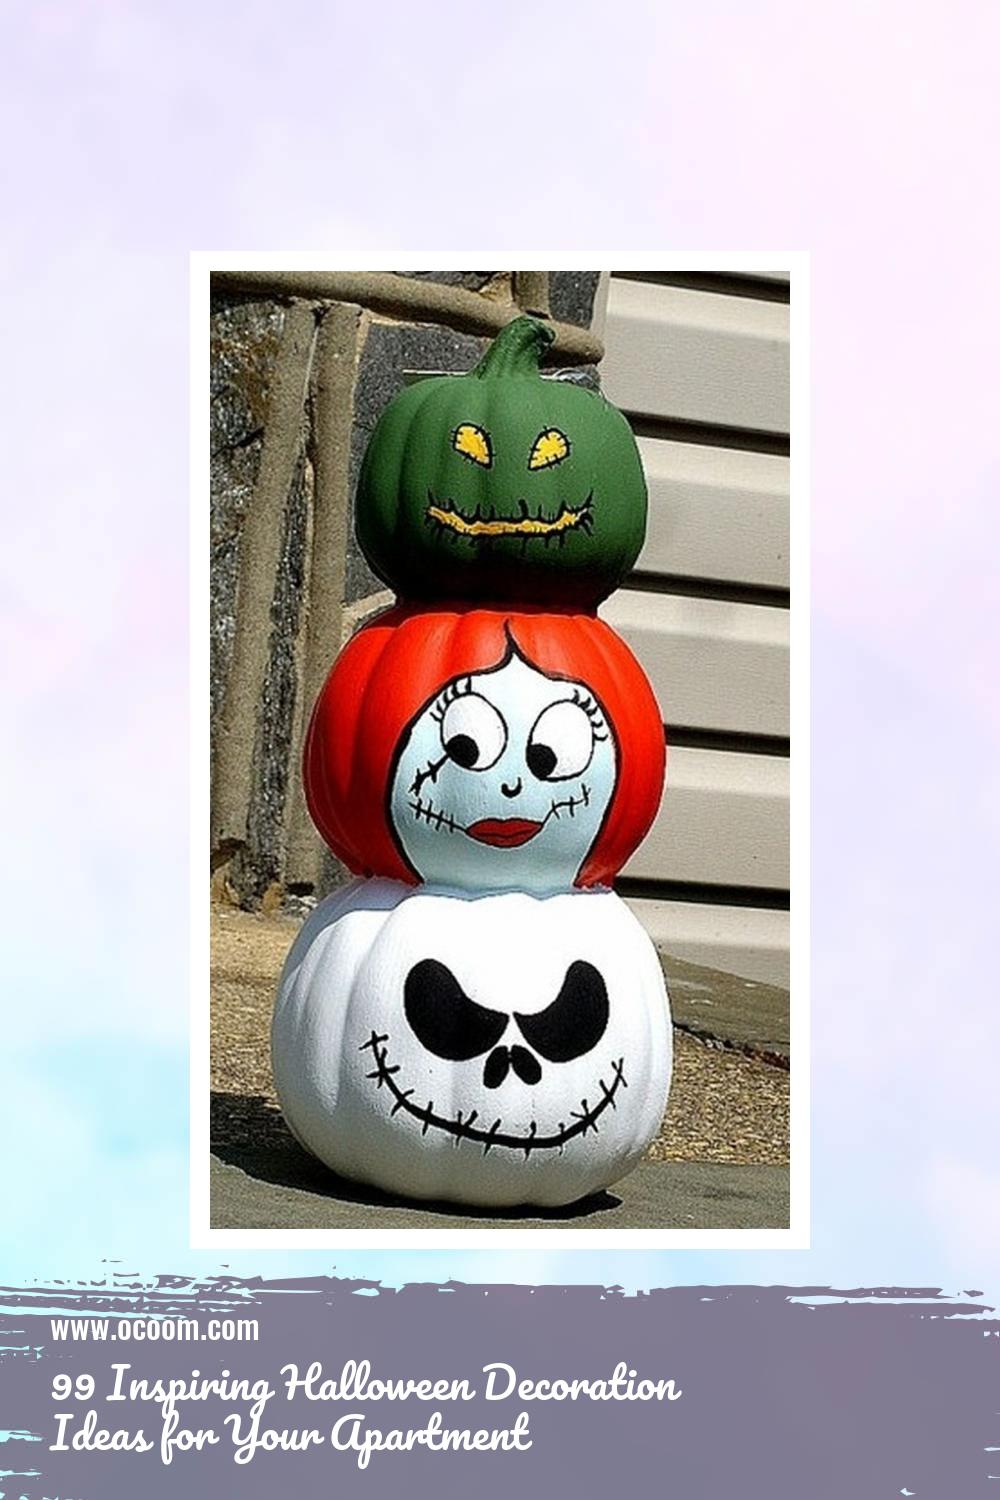 99 Inspiring Halloween Decoration Ideas for Your Apartment 6